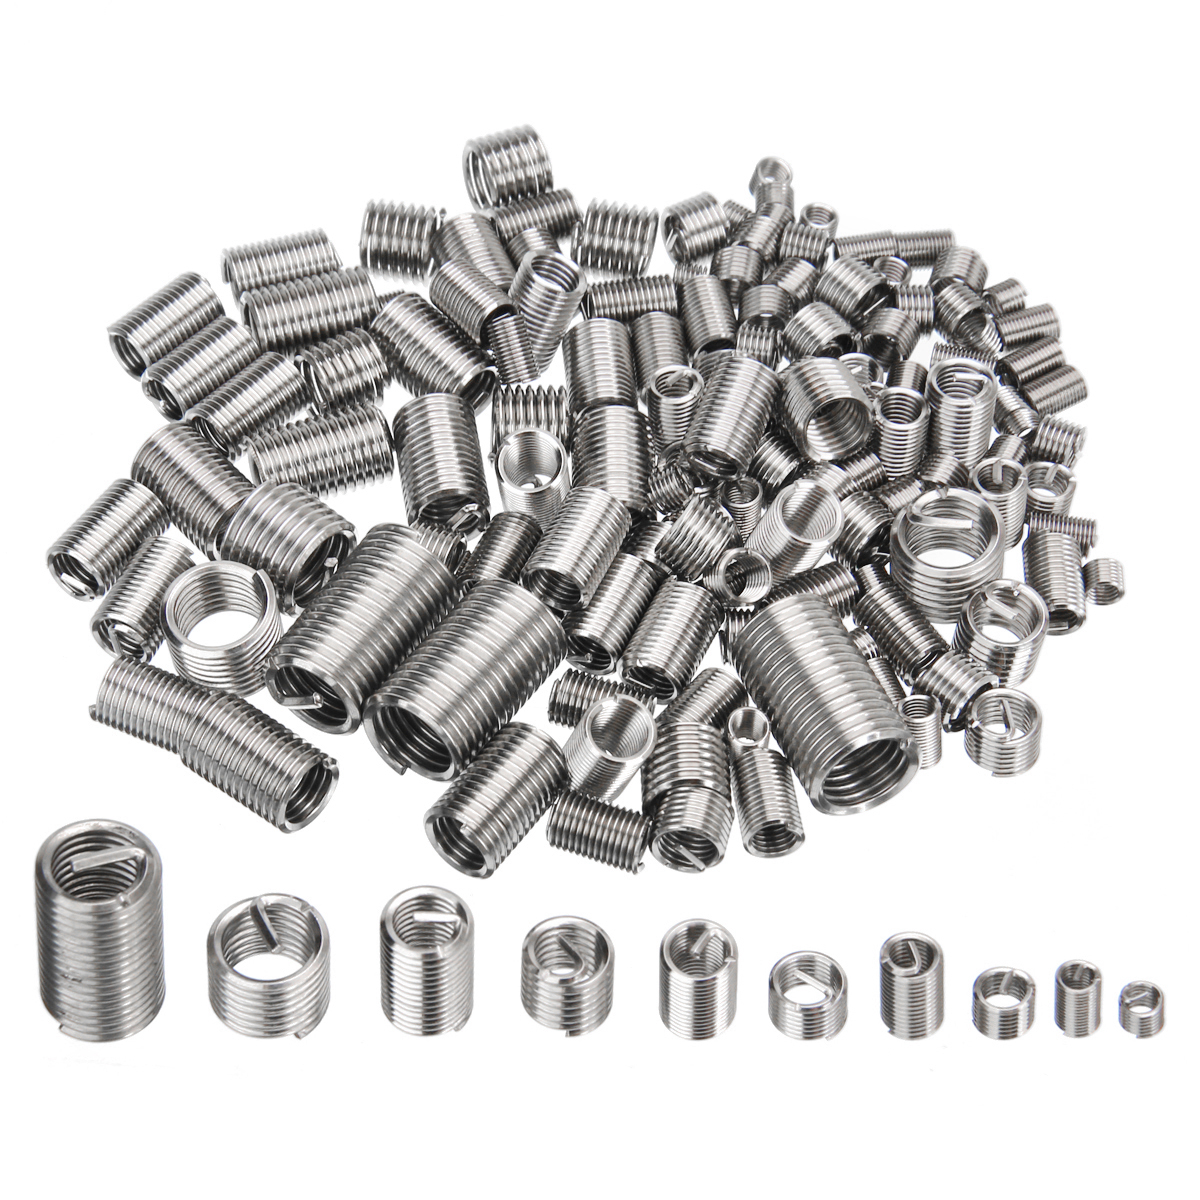 150pcs M3 M4 M5 M6 M8 Thread Repair Insert Kit Set Stainless Steel Helicoil Hardware Fastener Accessories